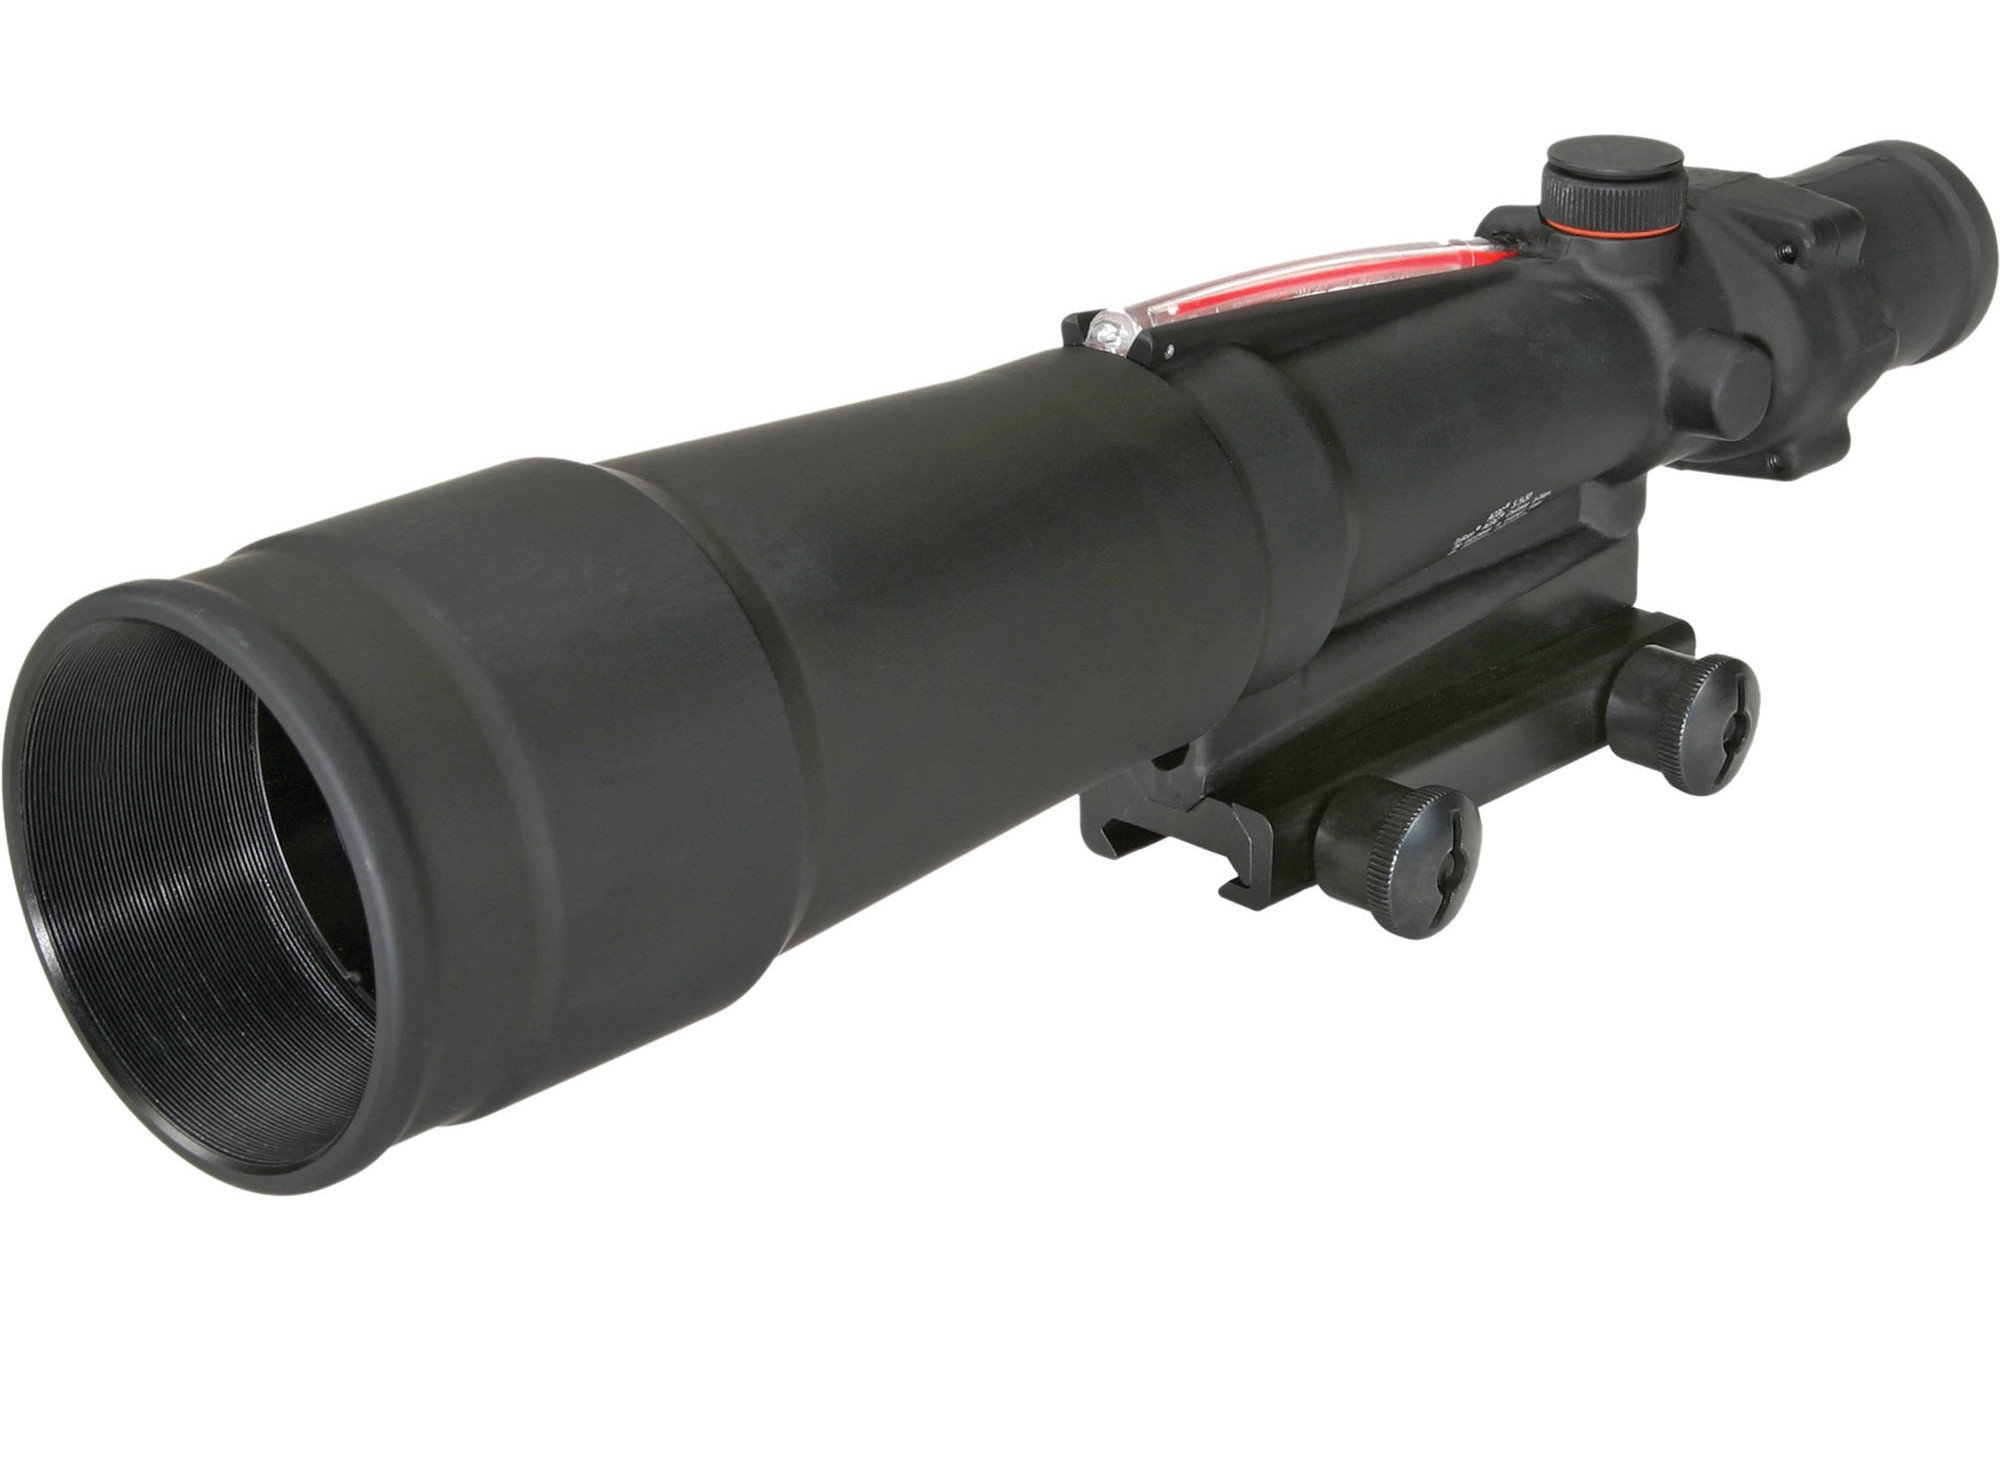 Trijicon Acog 5 5x50 308 With Bac And Flattop Mount Buy